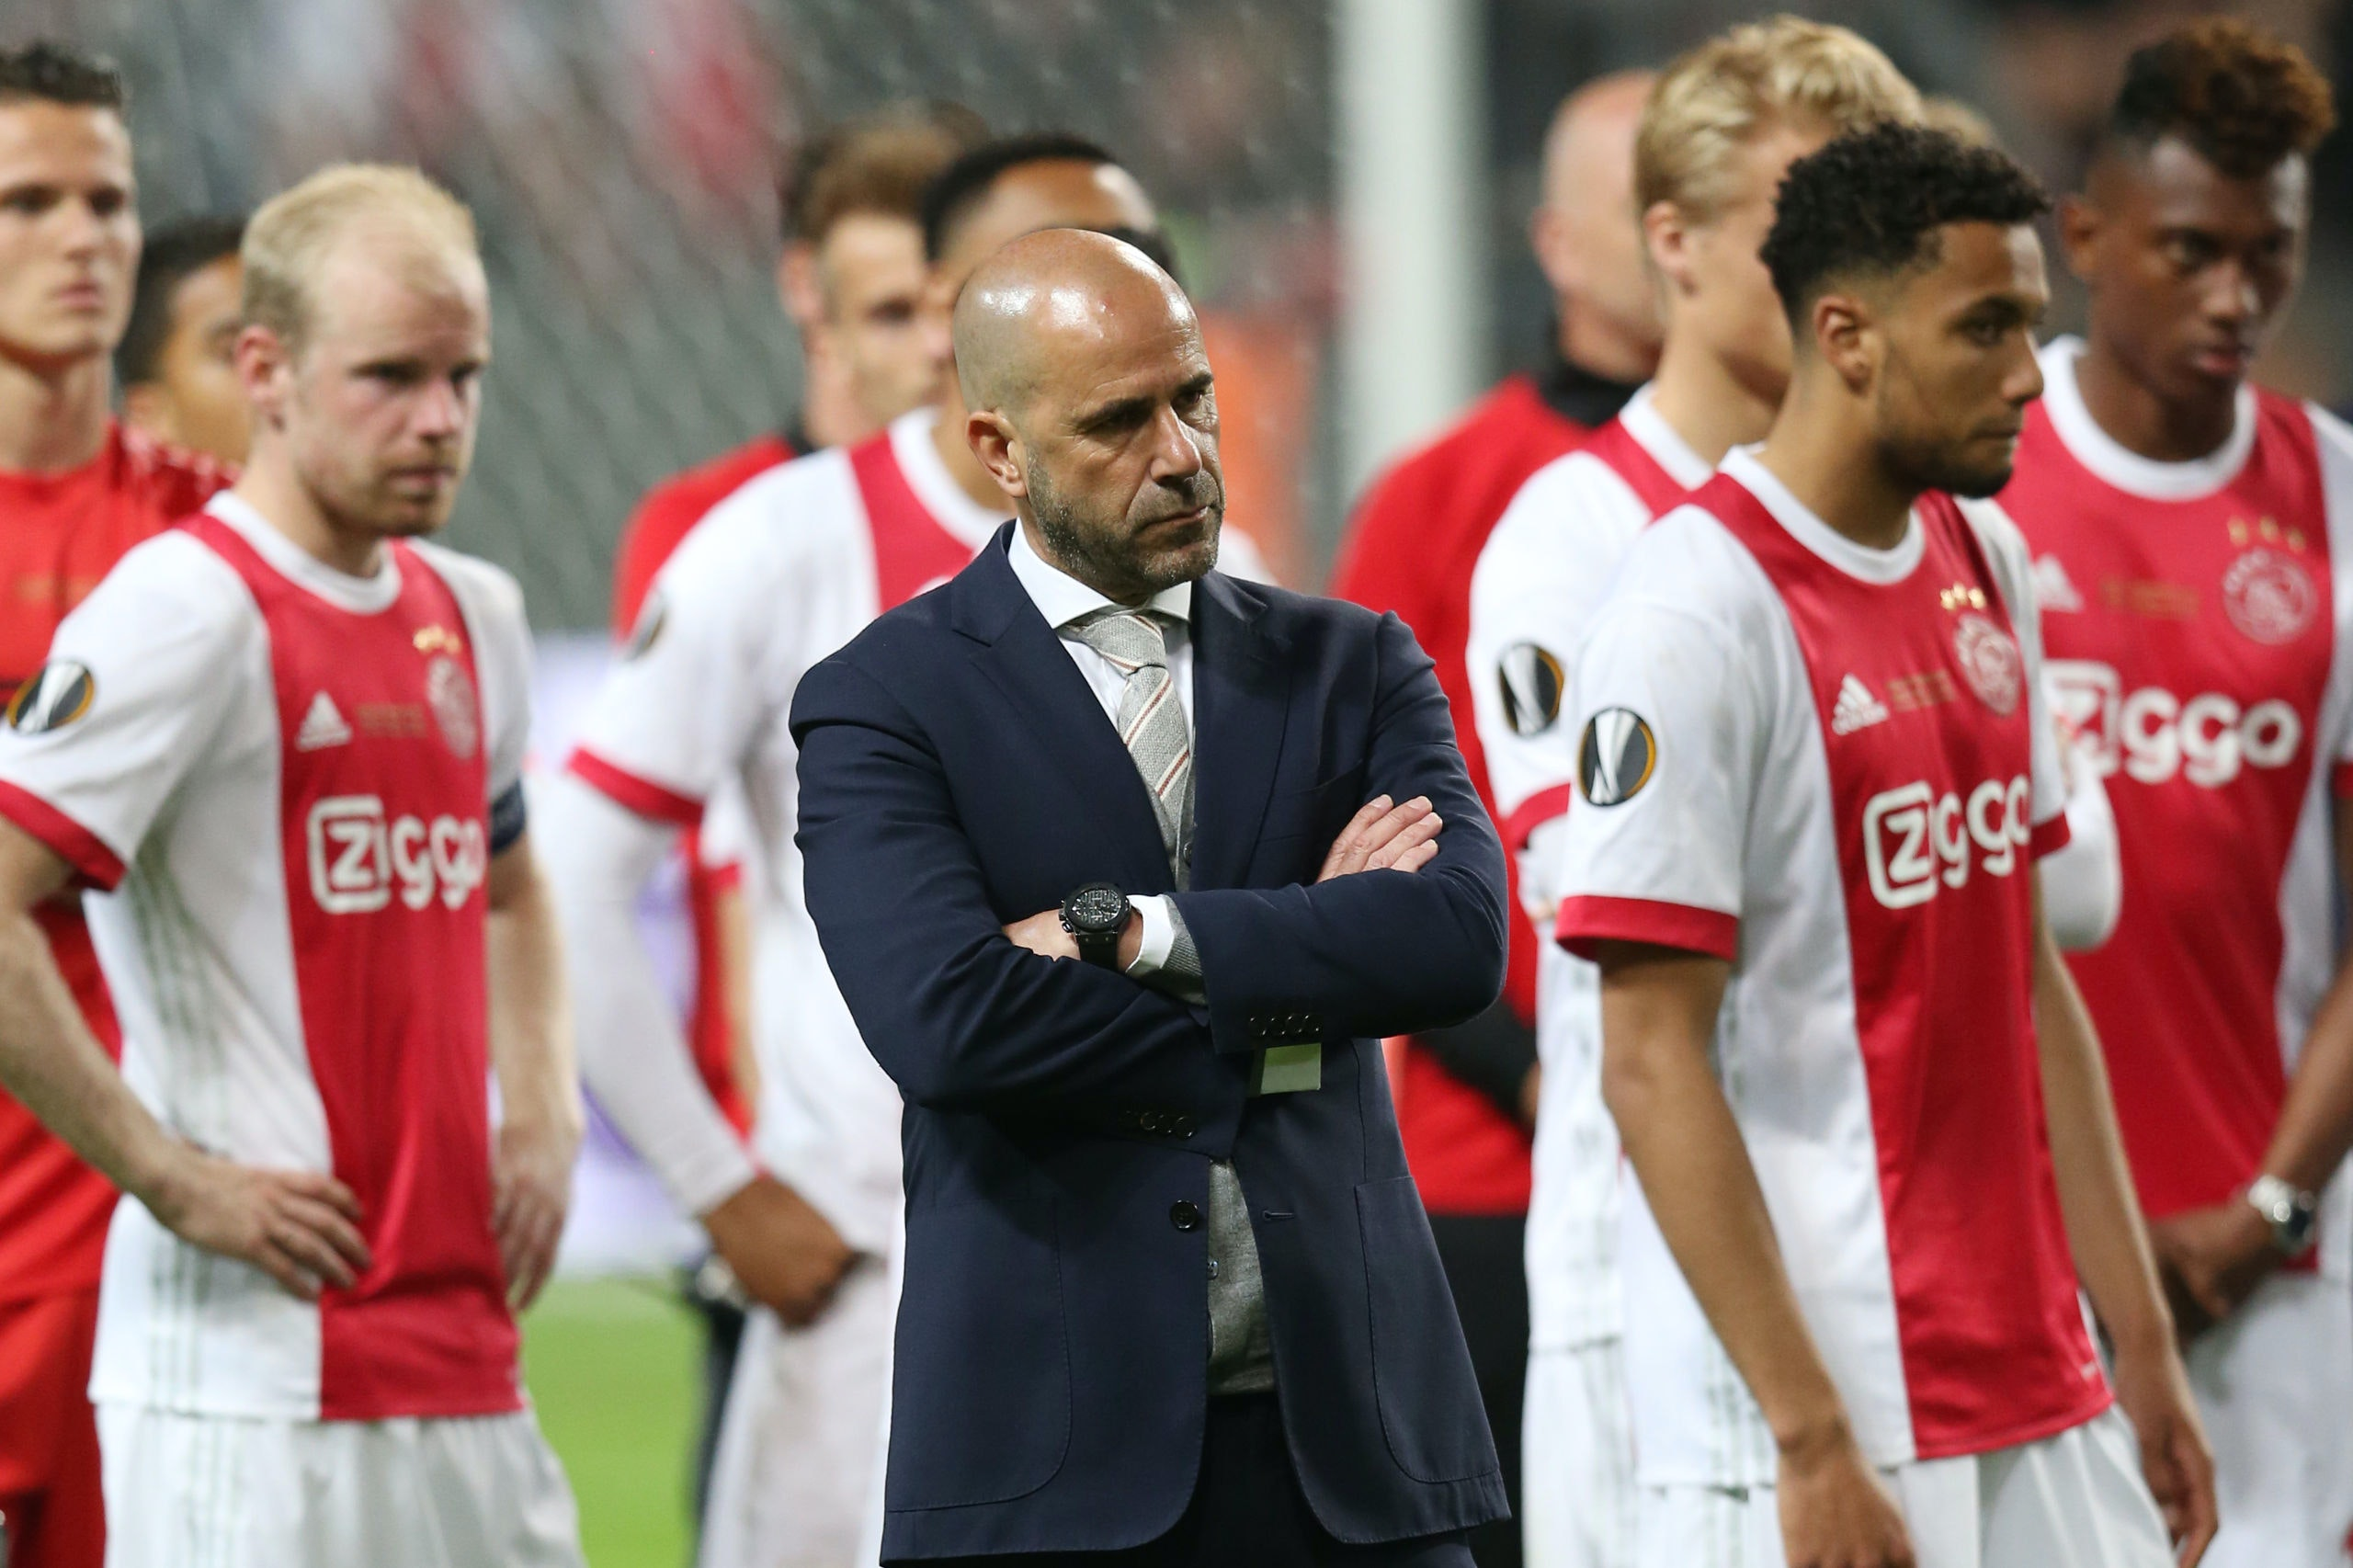 Davy Klaassen of Ajax, coach Peter Bosz of Ajax, Jairo Riedewald  of Ajax,during the UEFA Europa League final match between Ajax Amsterdam and Manchester United at the Friends Arena on May 24, 2017 in Stockholm, Sweden